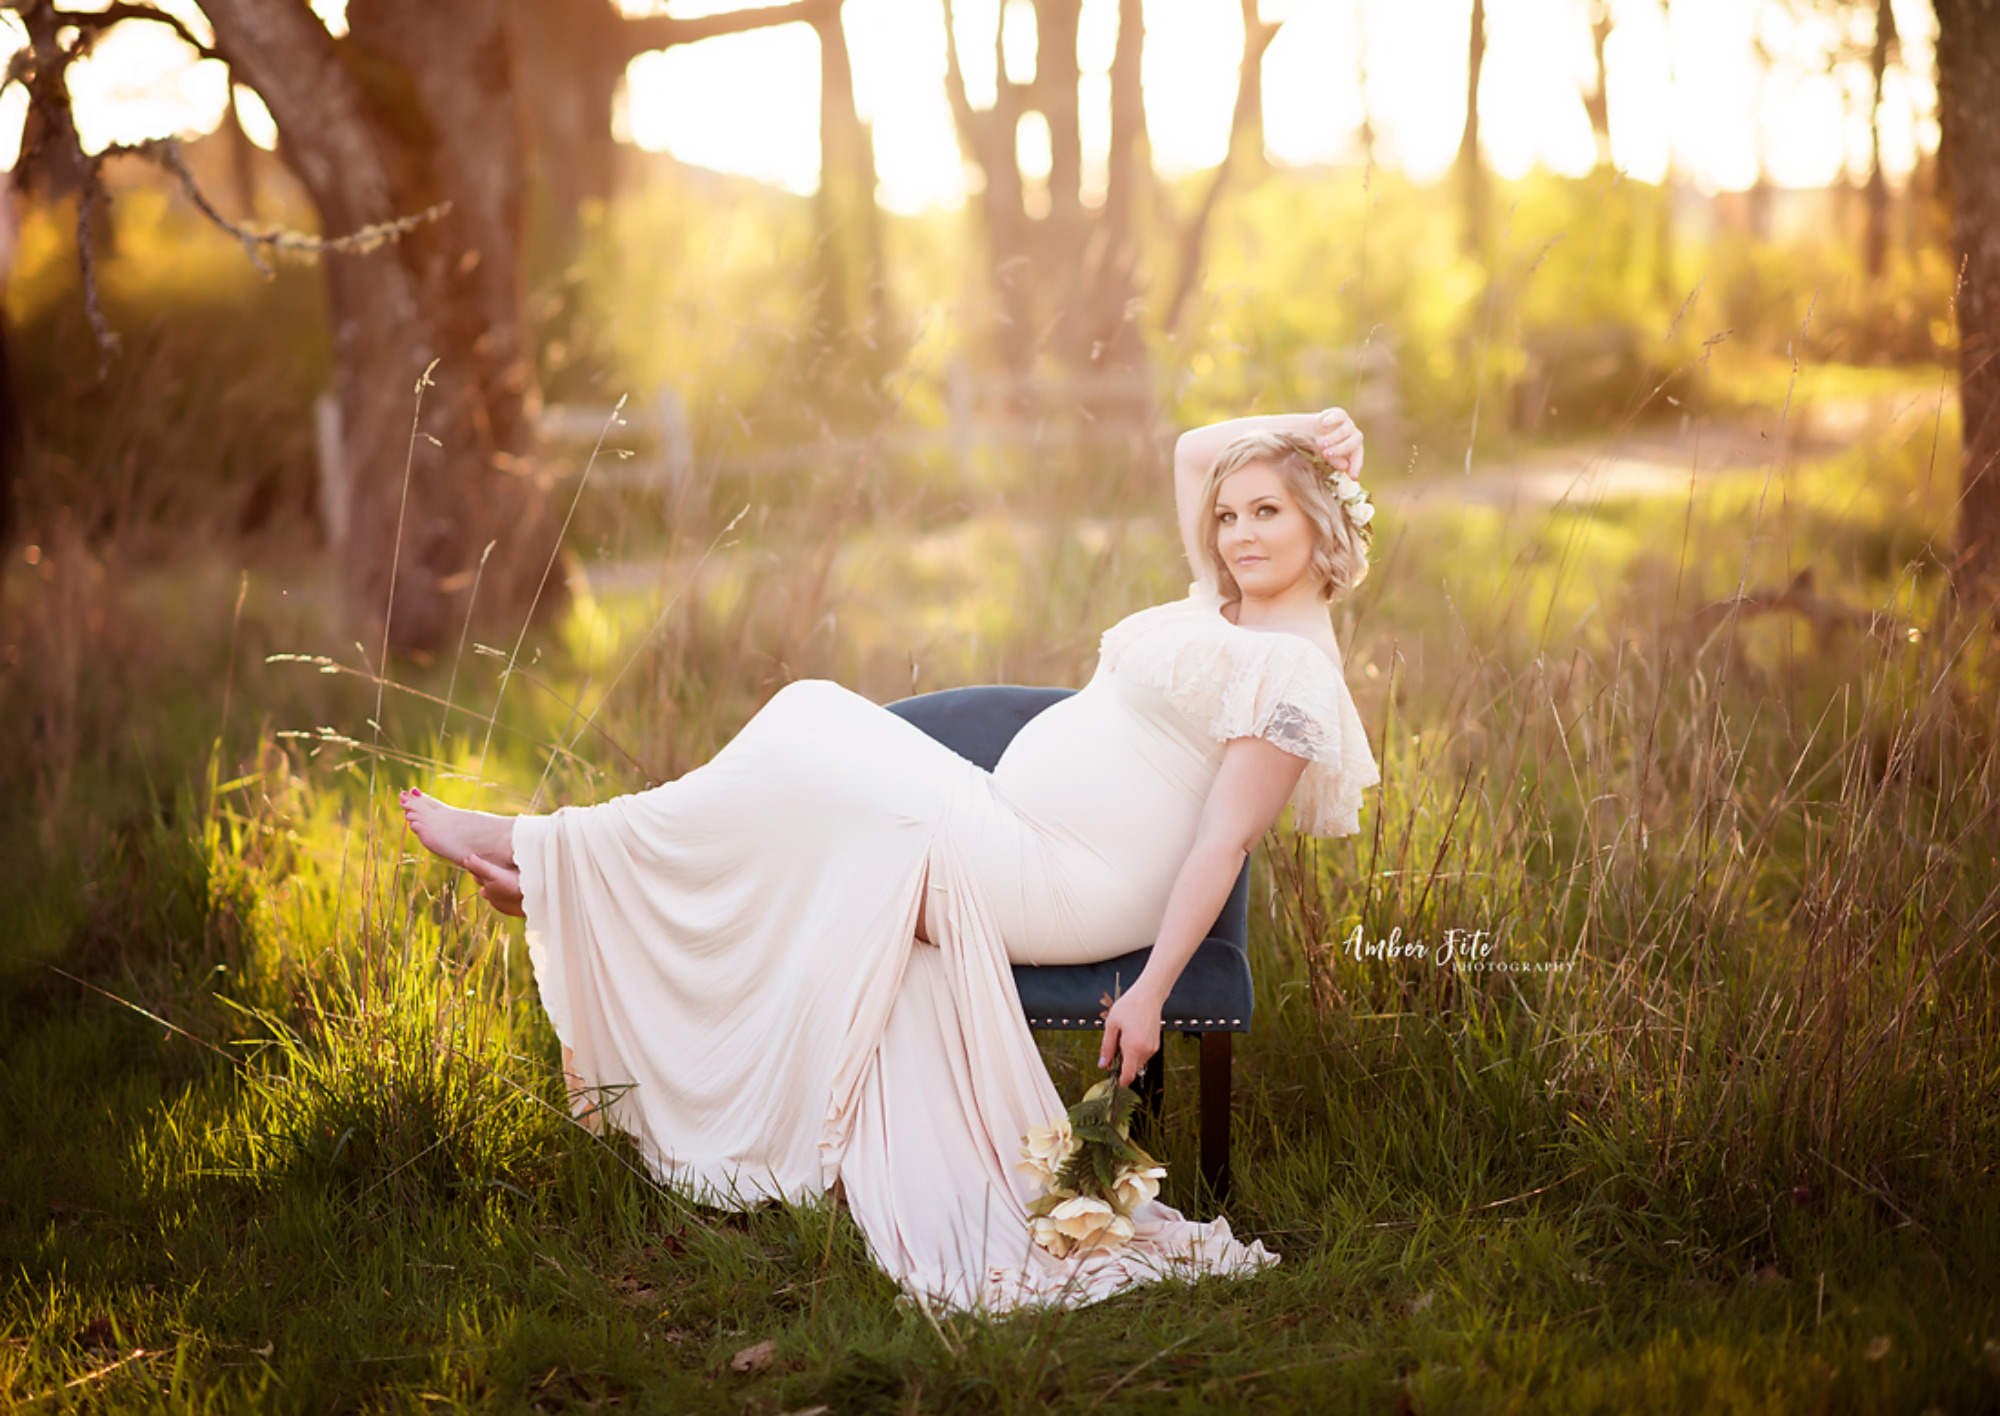 spring maternity photography ideas image